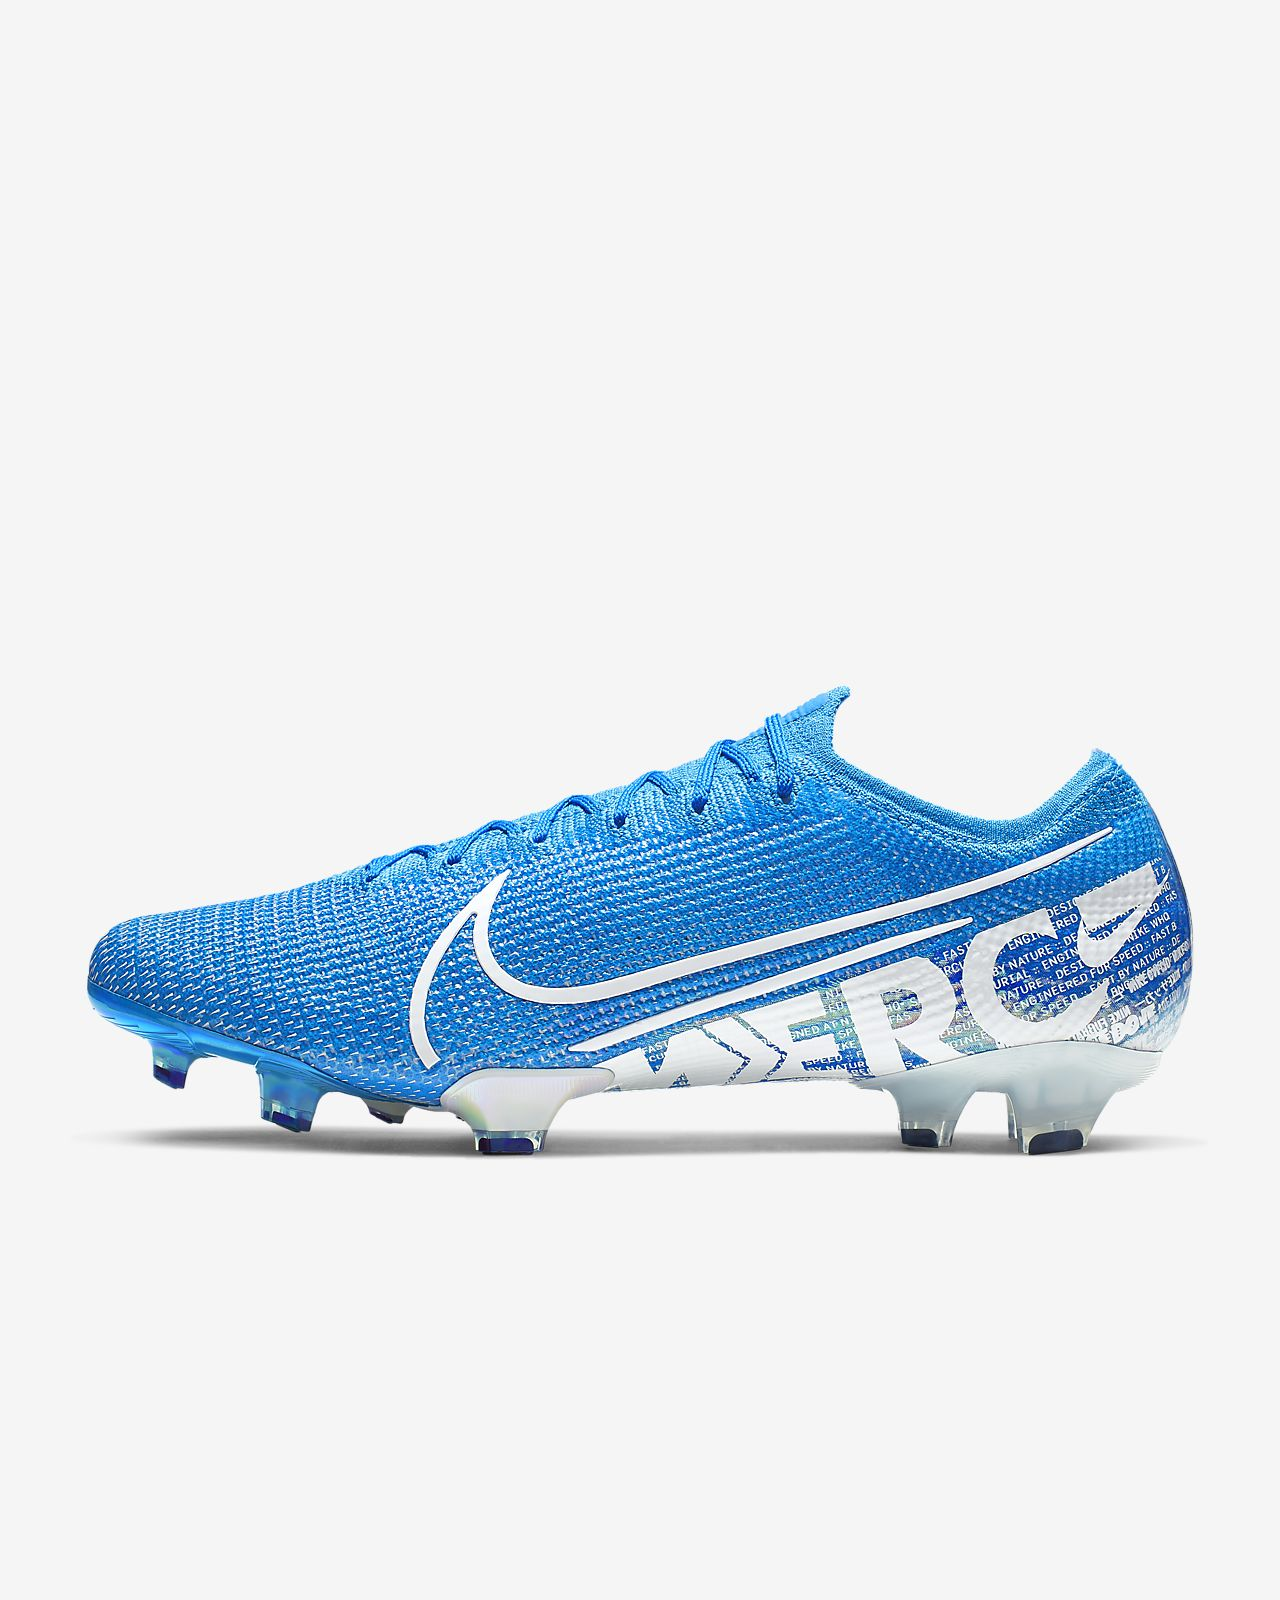 Nike Mercurial Vapor 13 Elite FG Firm